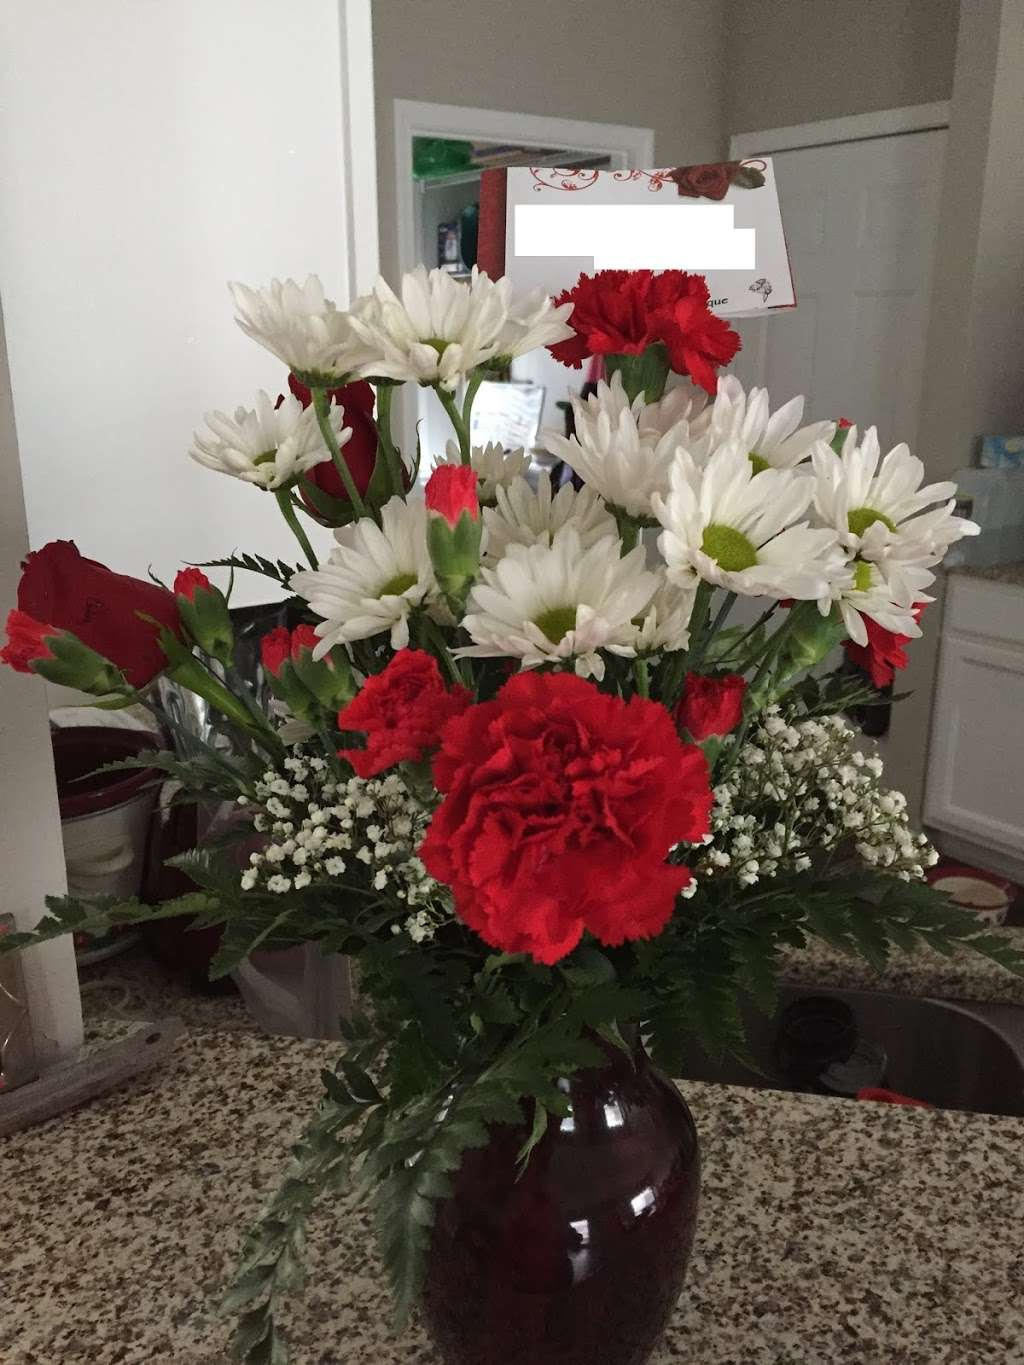 All Occasions Florist & Boutique - florist  | Photo 3 of 6 | Address: 1205 Mecklenburg Hwy, Mooresville, NC 28115, USA | Phone: (704) 799-0474